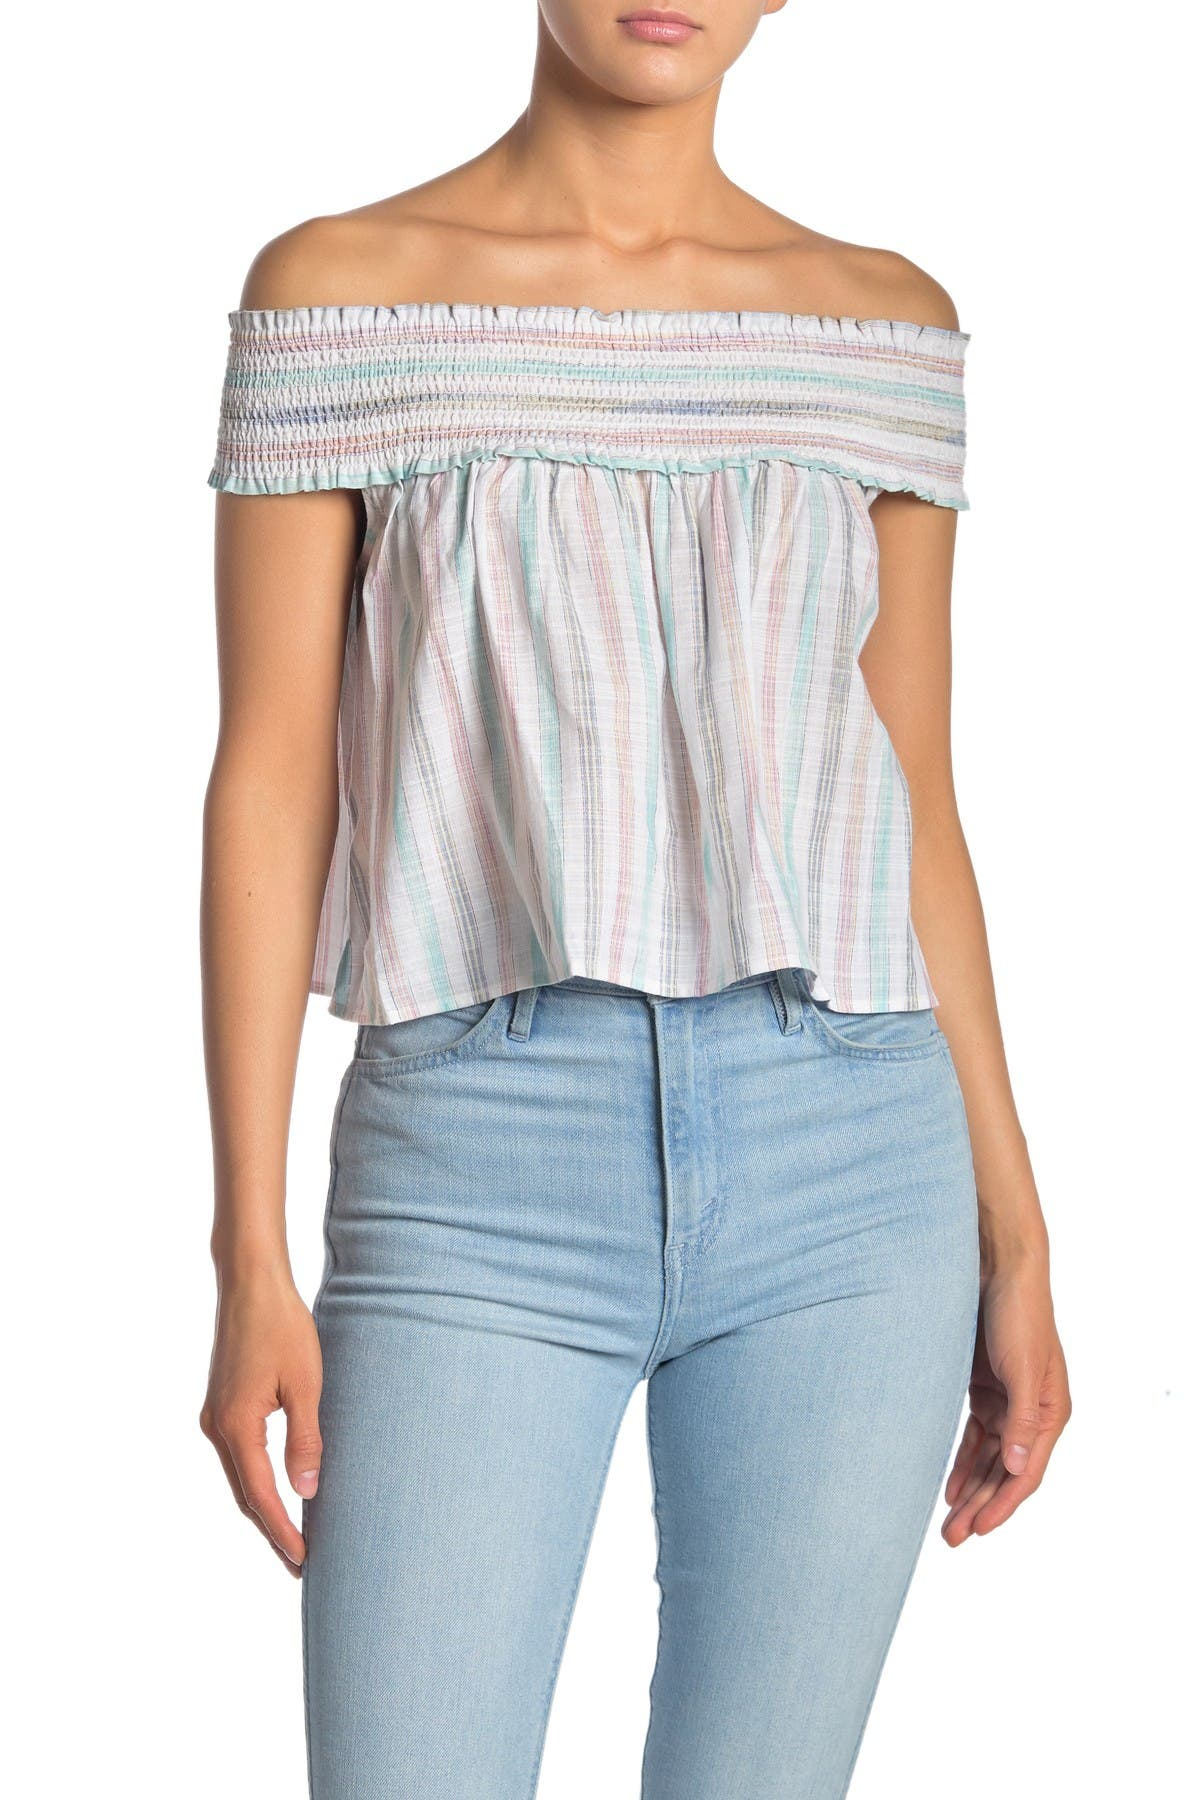 Image of: Cupcakes And Cashmere Alcyone Smocked Off The Shoulder Top Nordstrom Rack